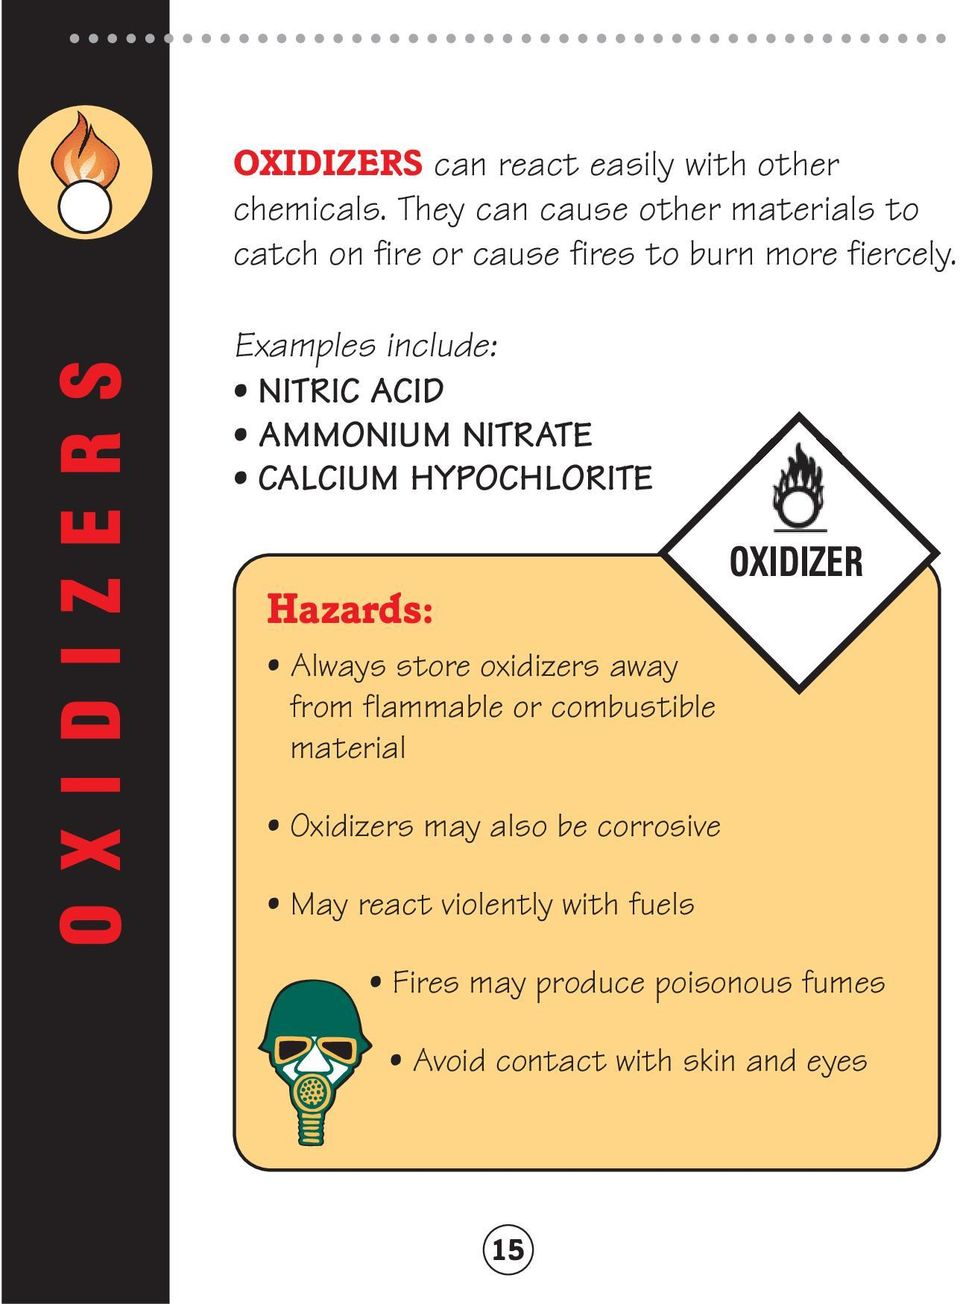 OXIDIZERS Examples include: NITRIC ACID AMMONIUM NITRATE CALCIUM HYPOCHLORITE Hazards: Always store